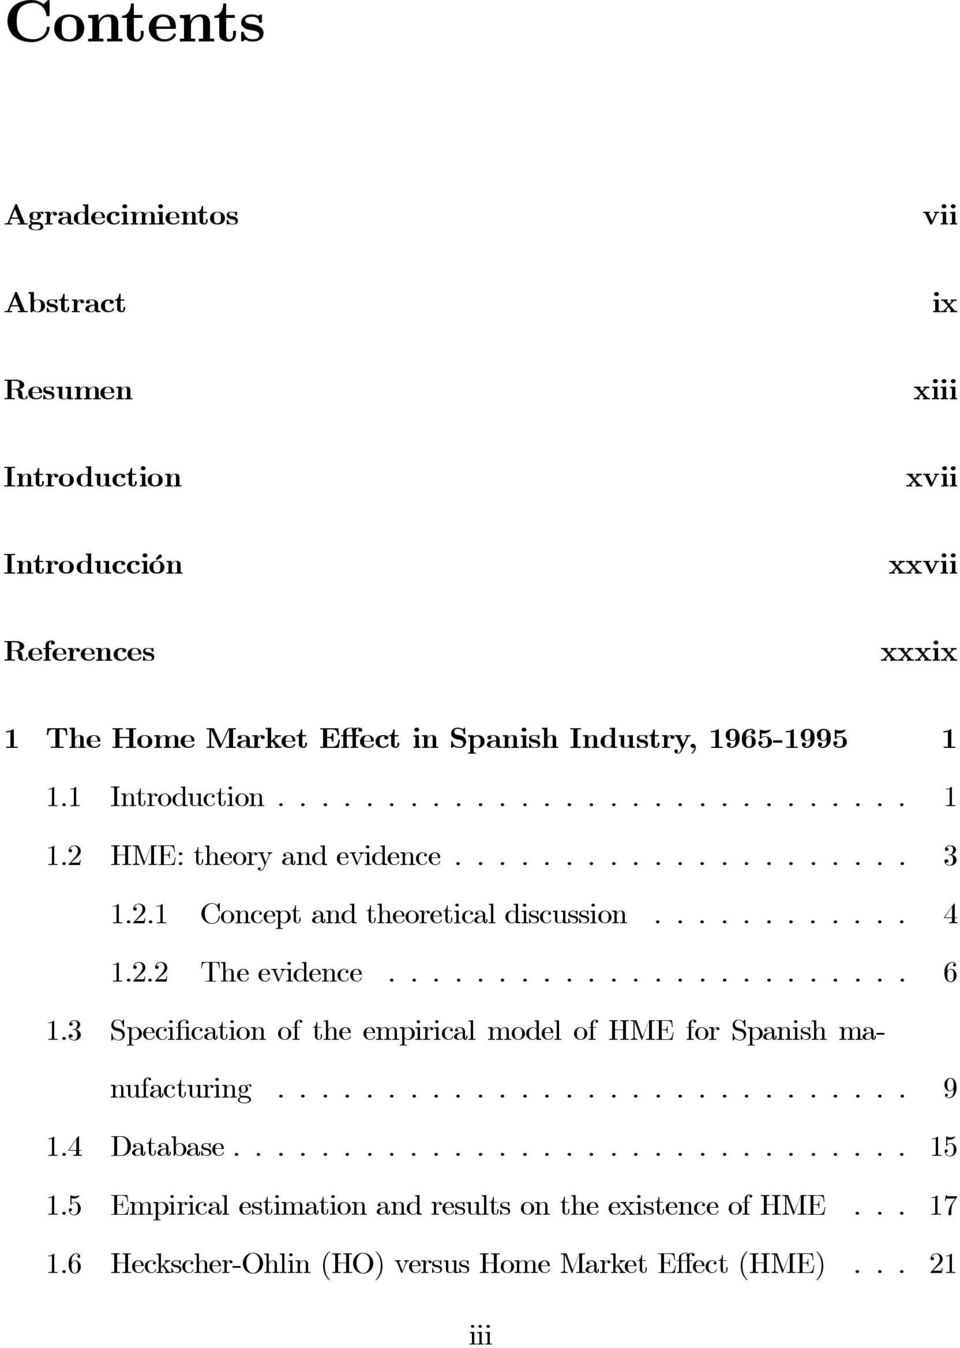 .. 4 1.2.2 Theevidence... 6 1.3 Specification of the empirical model of HME for Spanish manufacturing... 9 1.4 Database... 15 1.